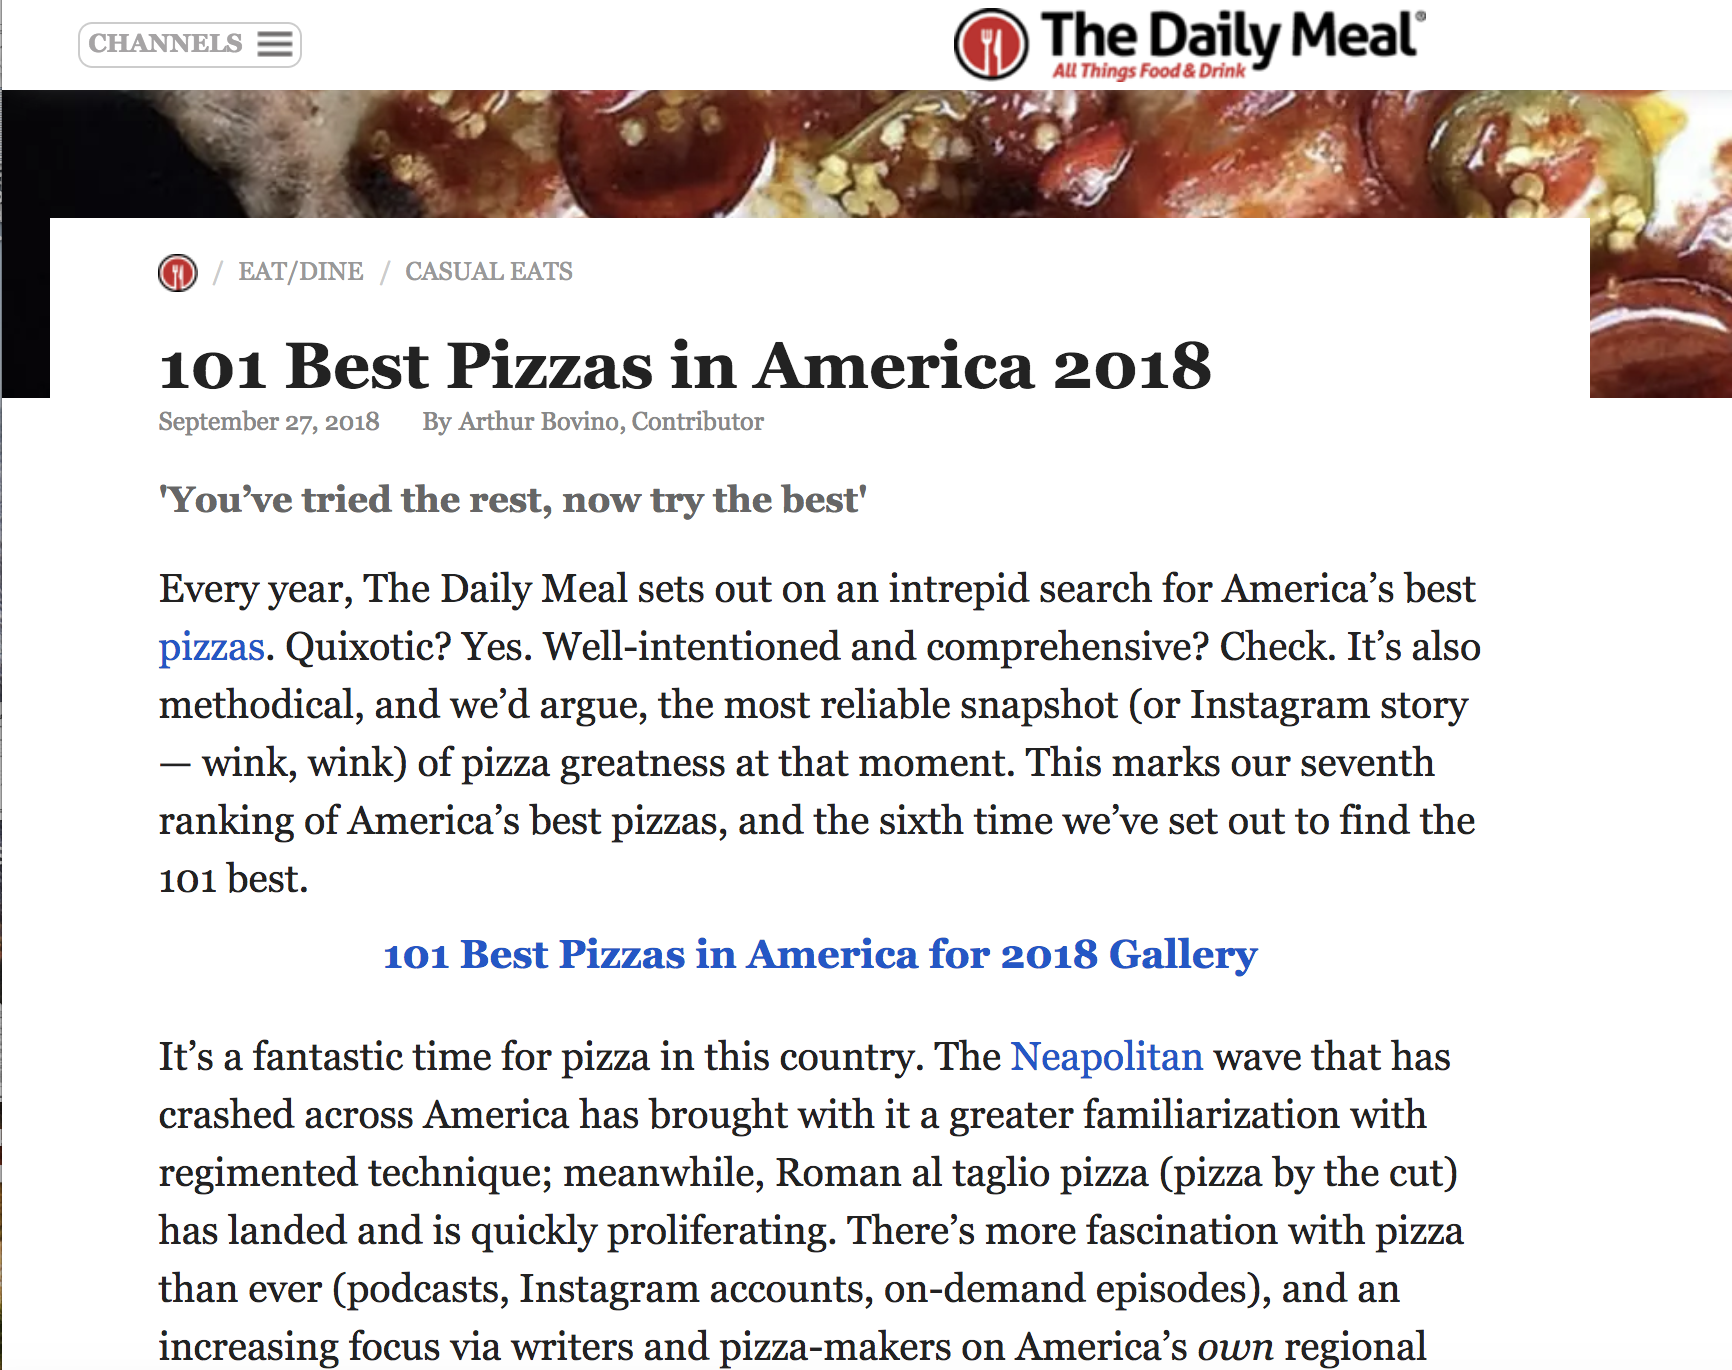 We research the newest best places, then build a survey of great pizzas from around the country.